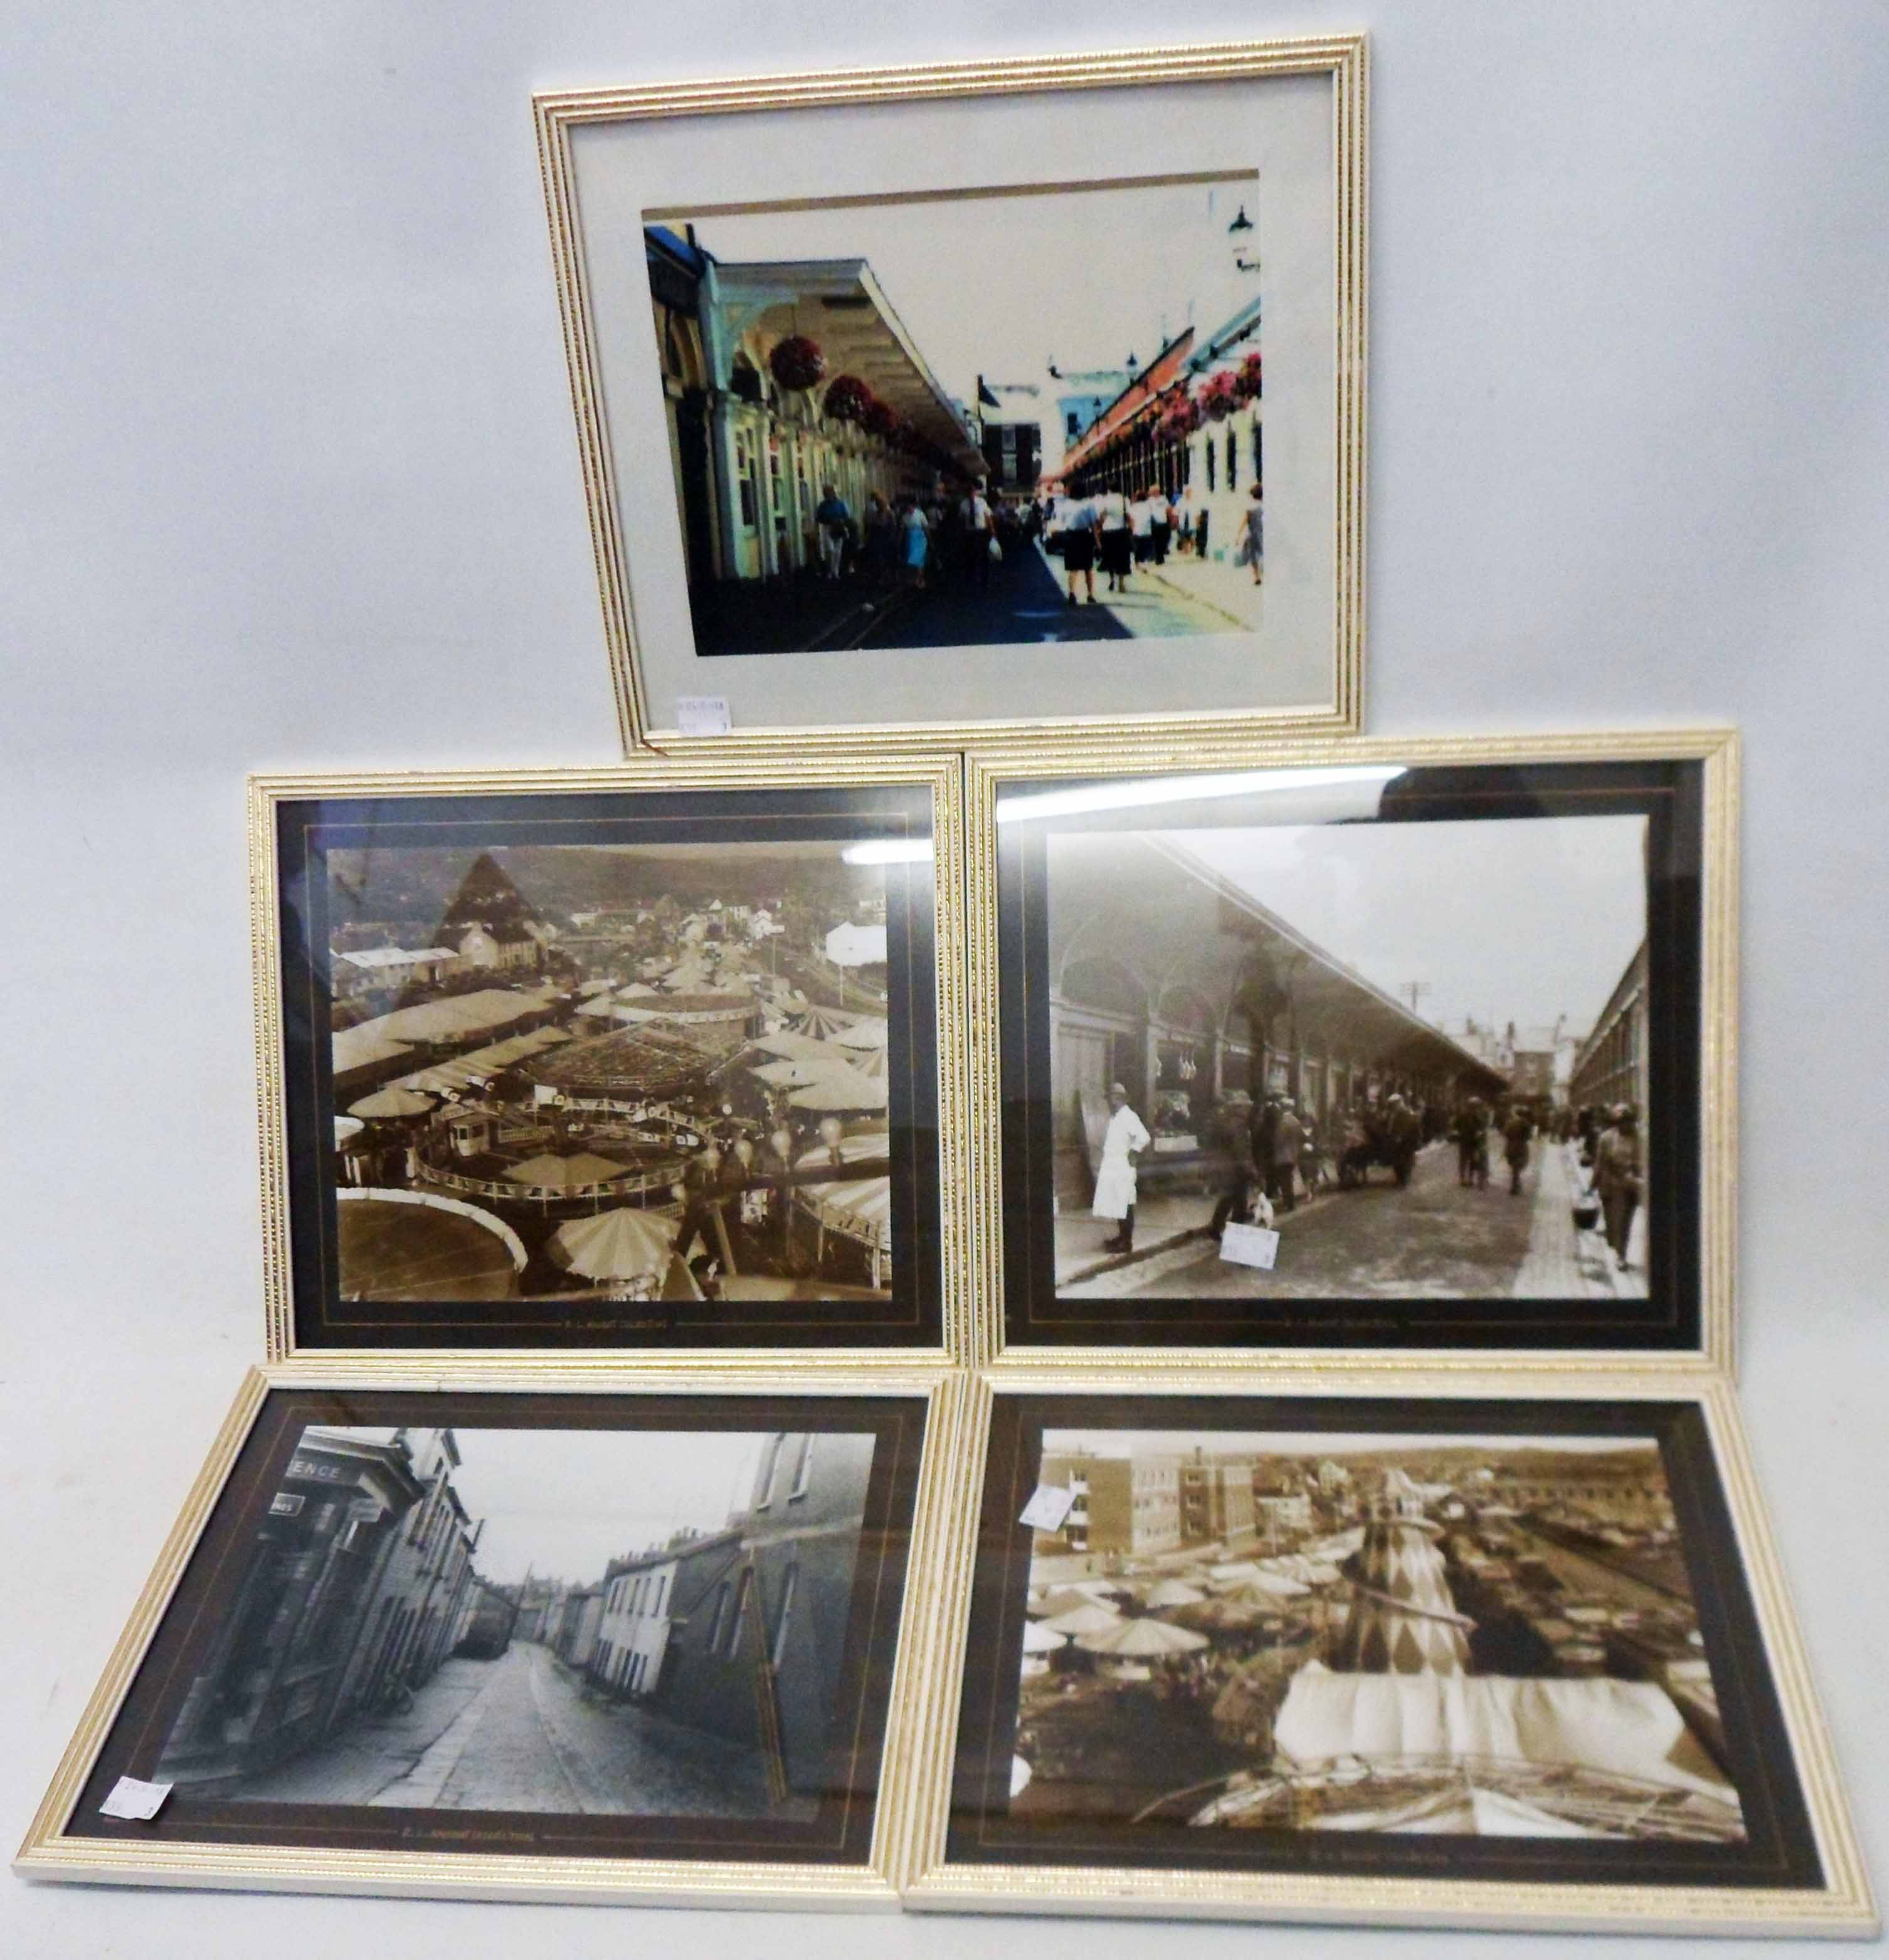 A set of four monochrome photographic prints of Barnstaple from the R.L. Knight collection - sold